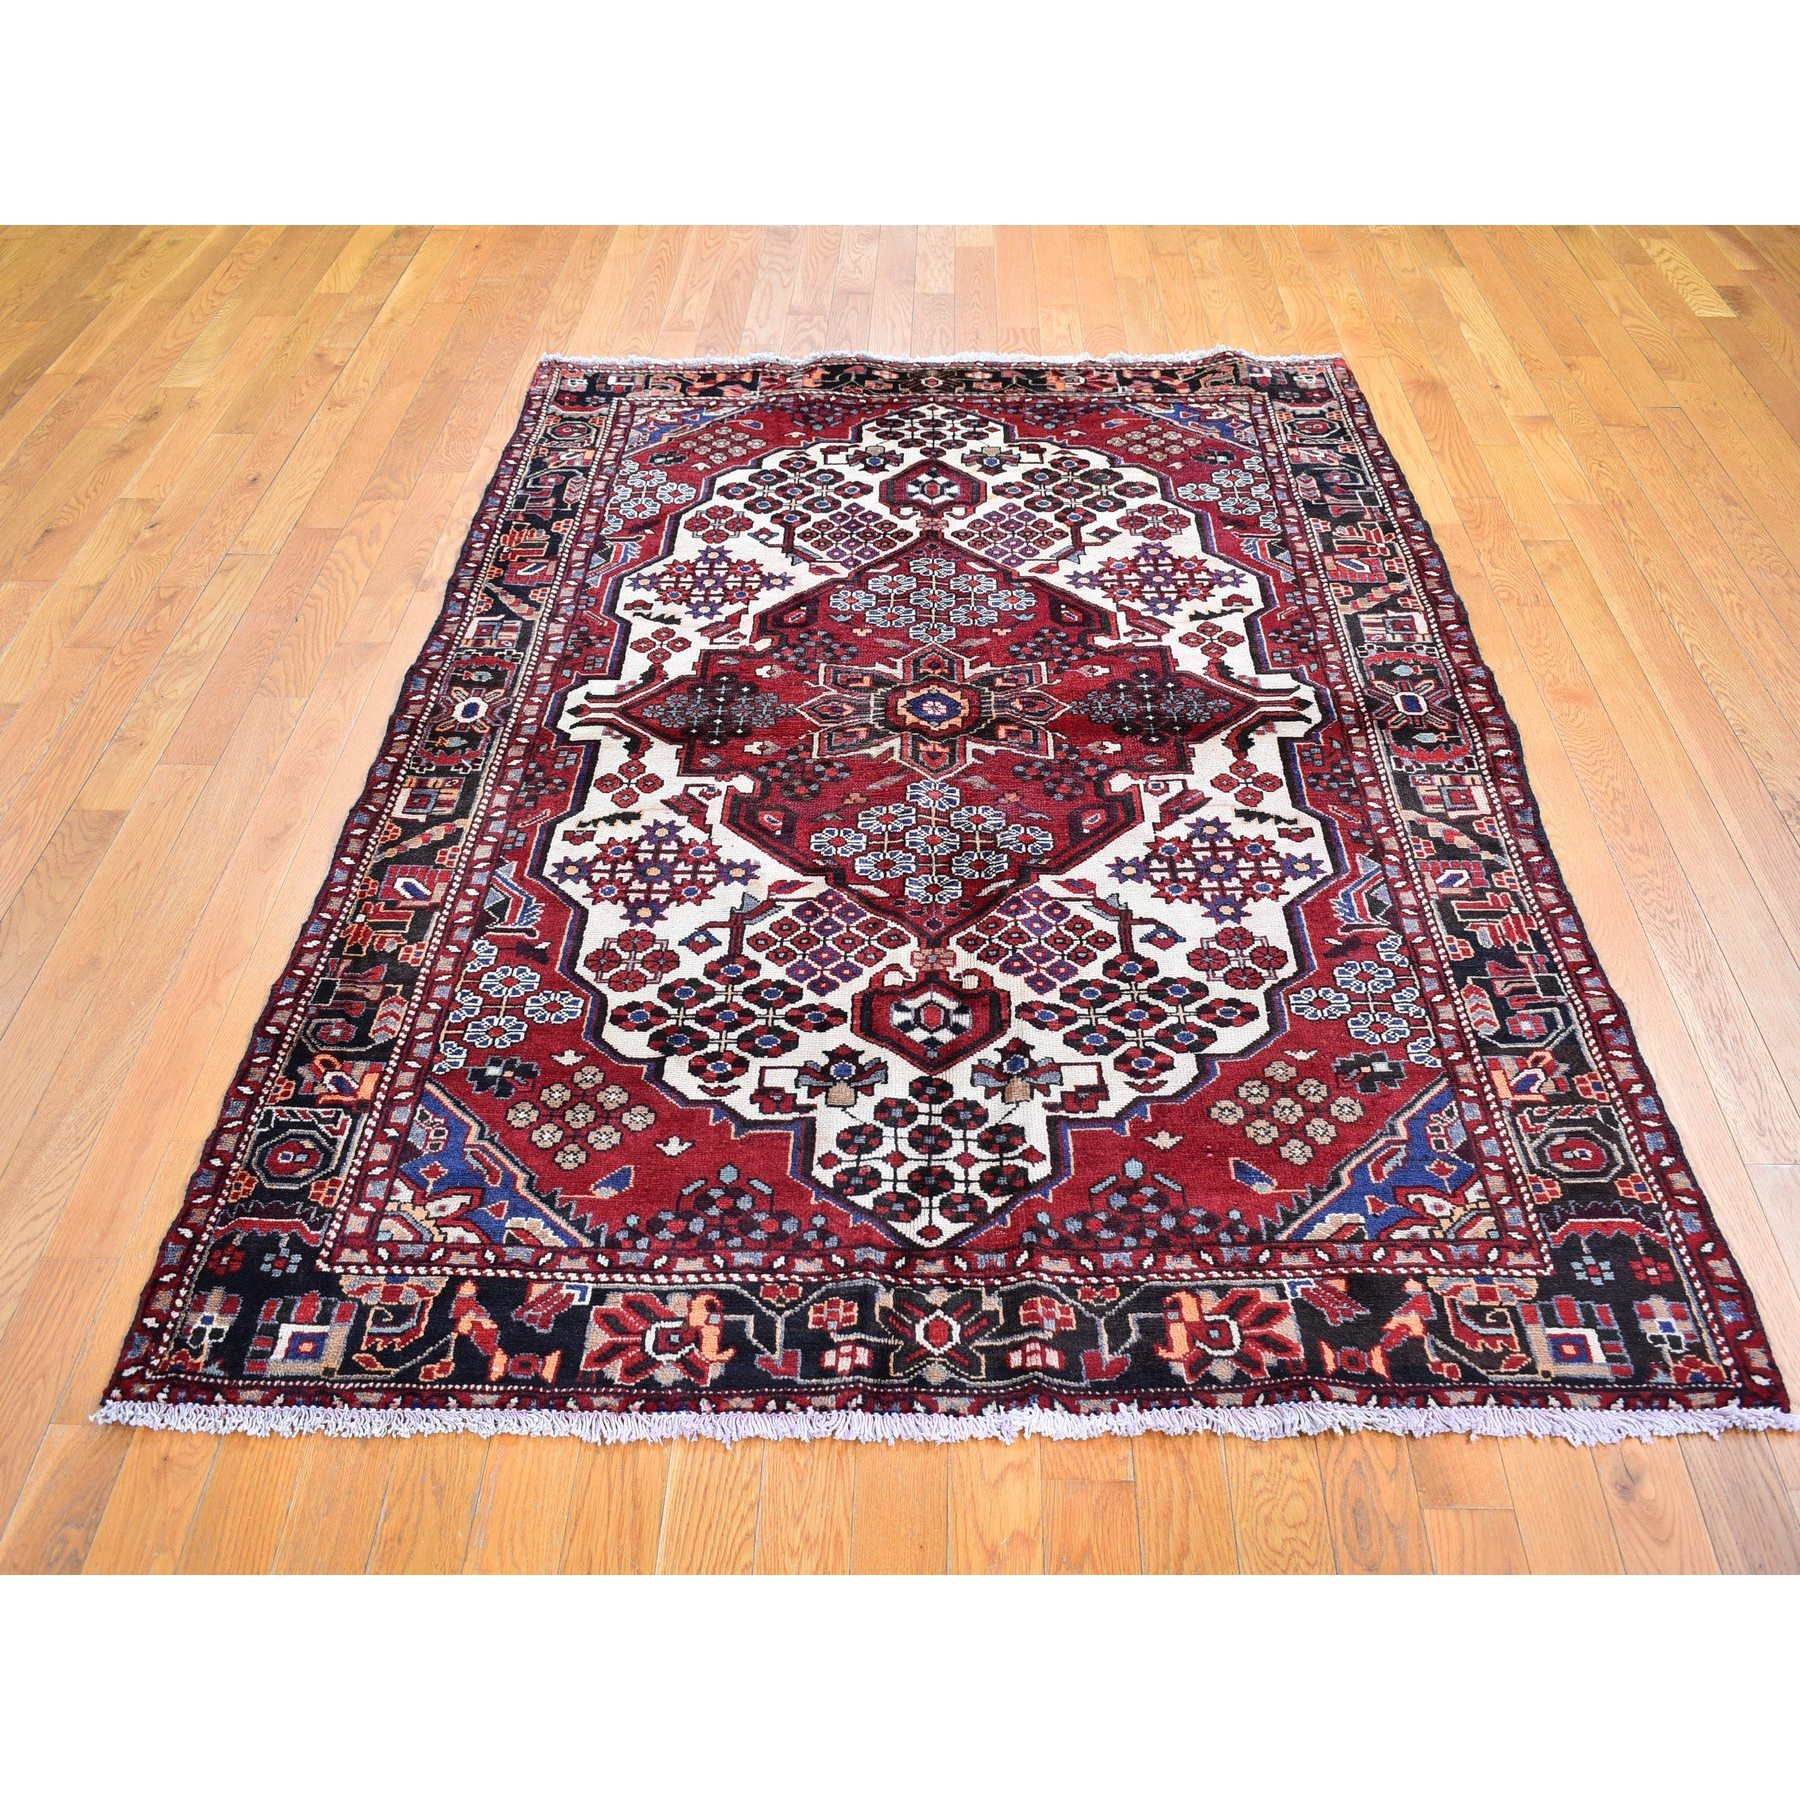 "5'1""x7'2"" Vintage Persian Hamadan Ivory with Flower Bouquet Design Pure Wool Hand Knotted Oriental Rug"